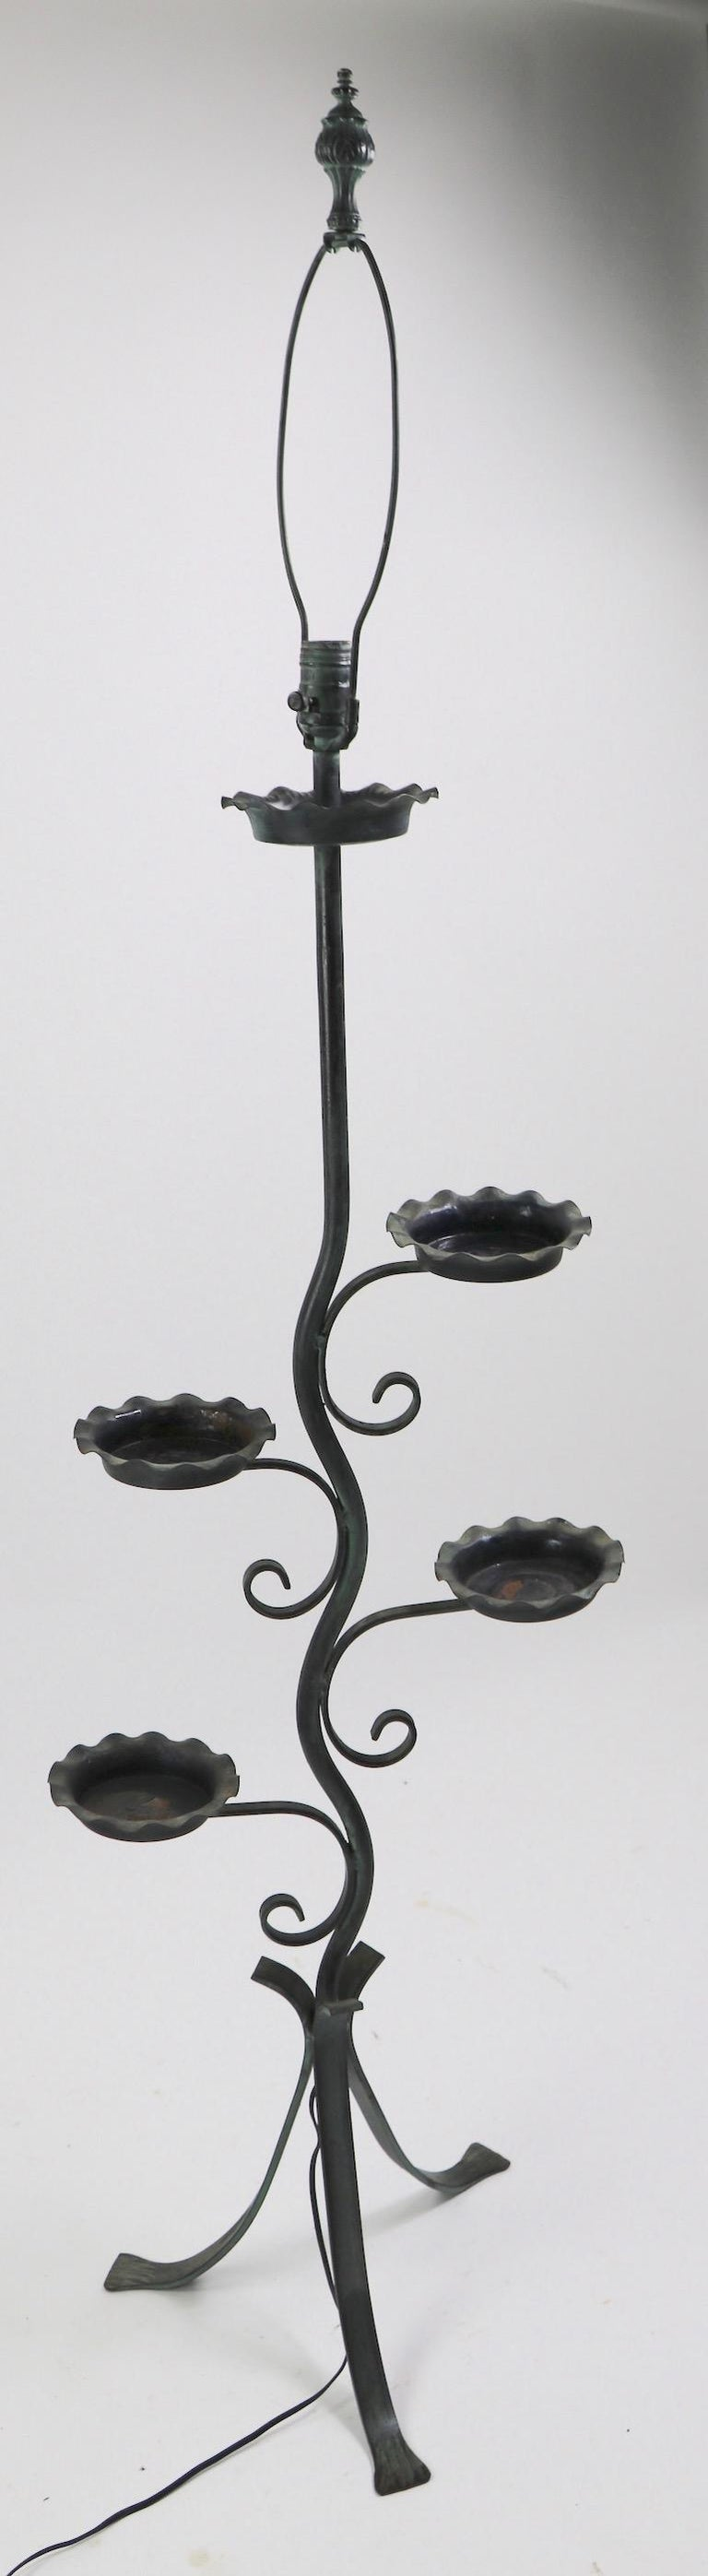 Stylish wrought and cast iron floor lamp, plant stand, in original faux verdigris finish. This interesting floor lamp has four arms, or branches, which support small ( 5.5 inch total diameter) trays, designed to hold a potted plant. The top is a